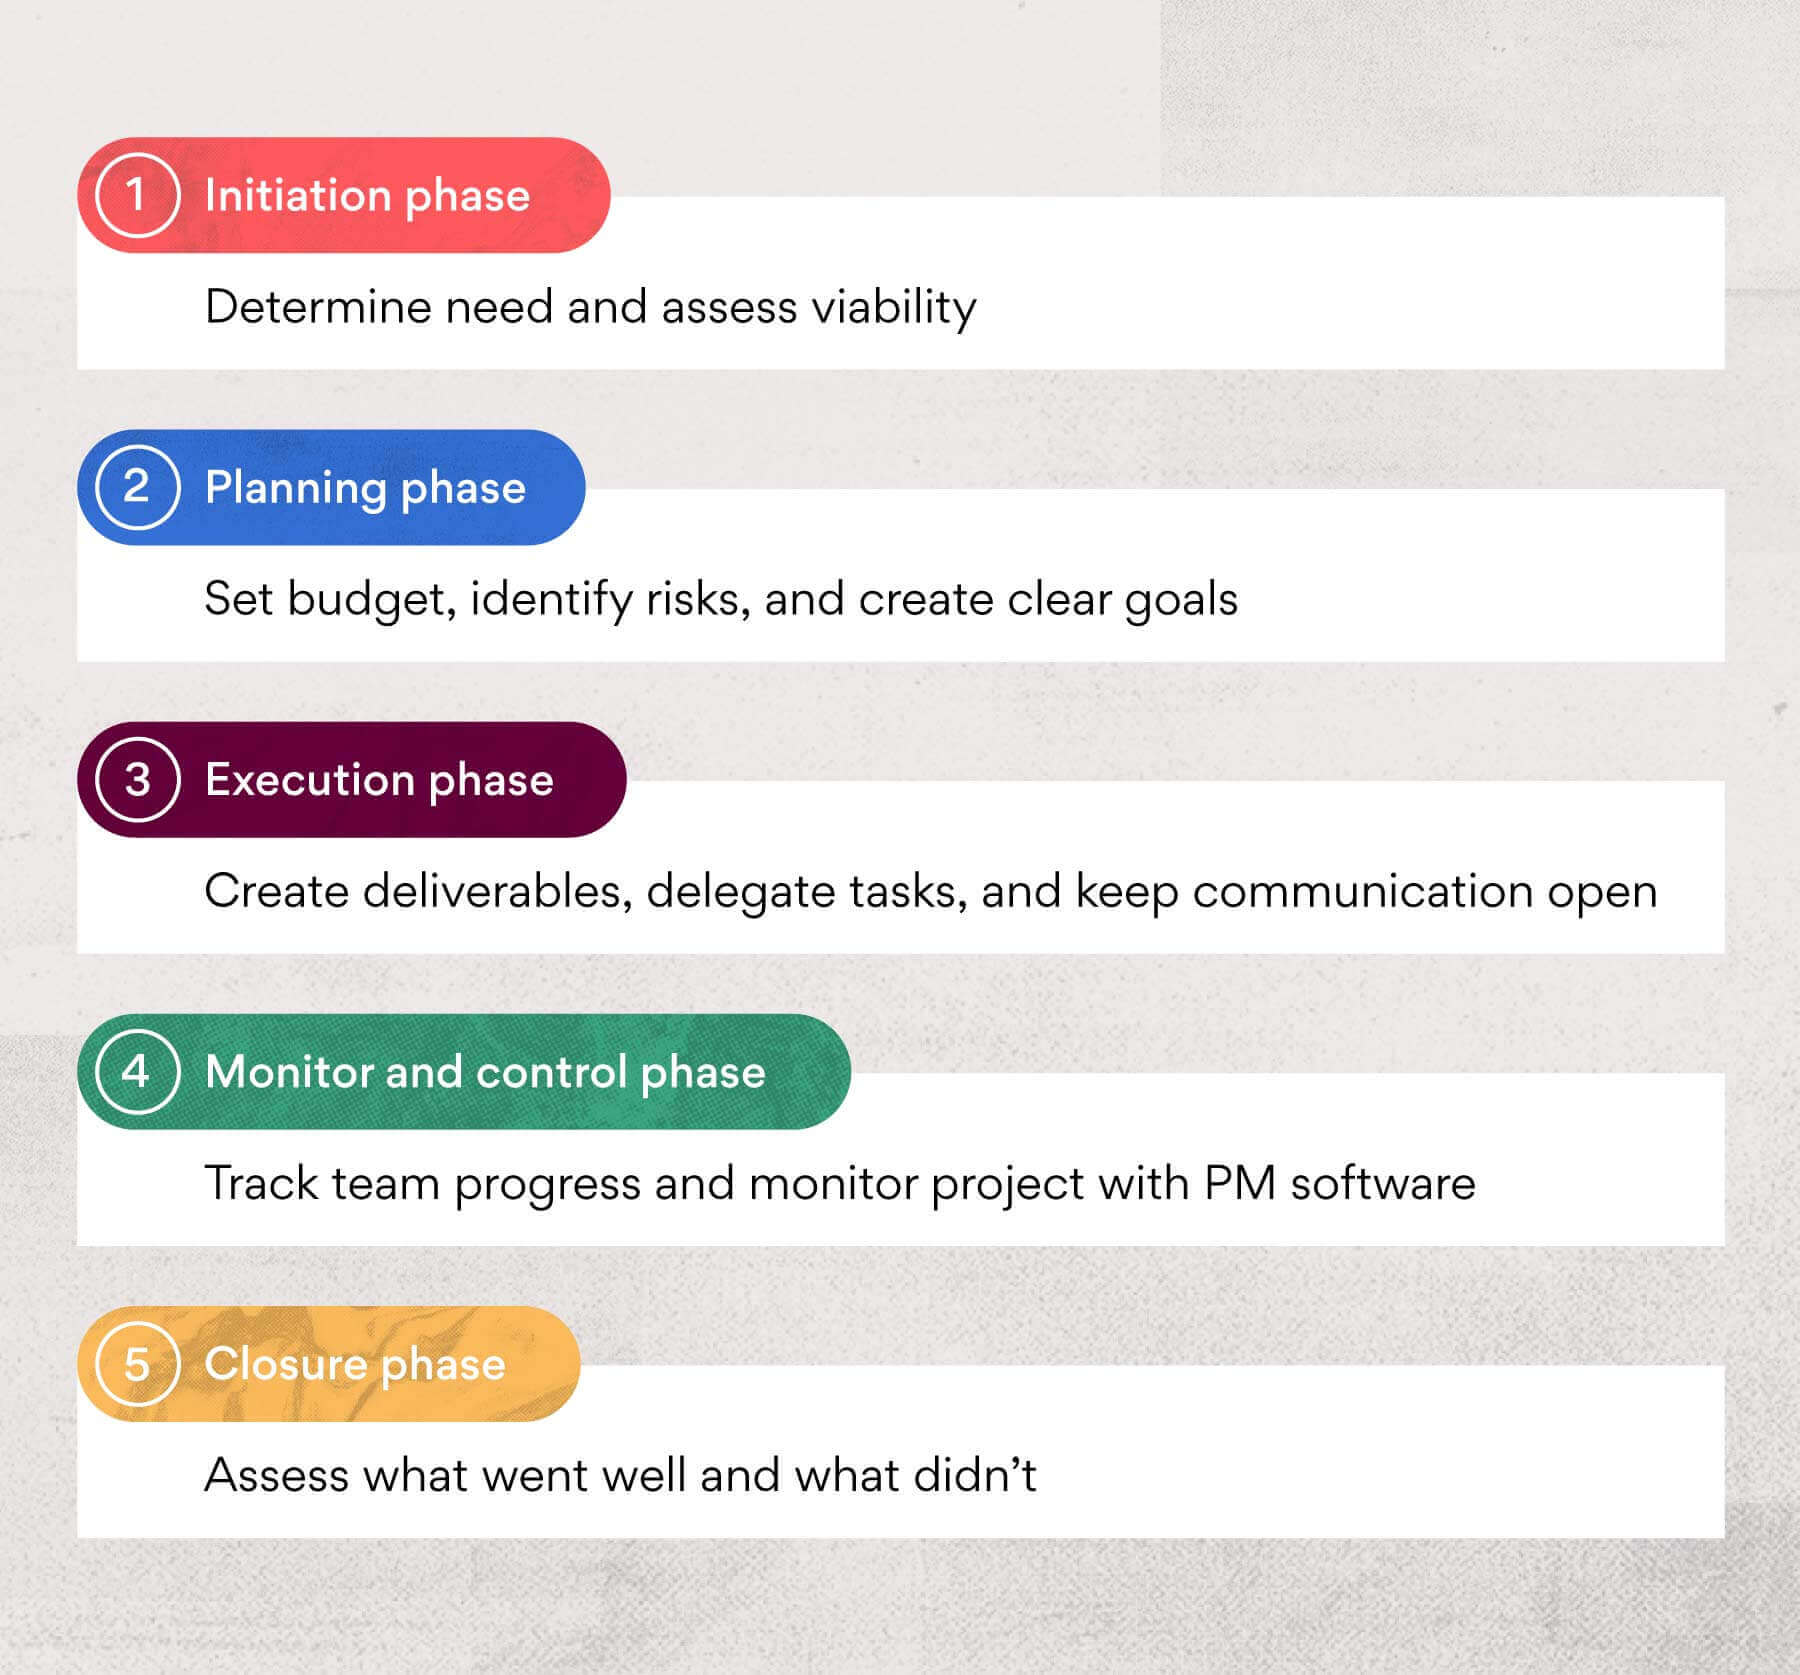 Phases of IT project management